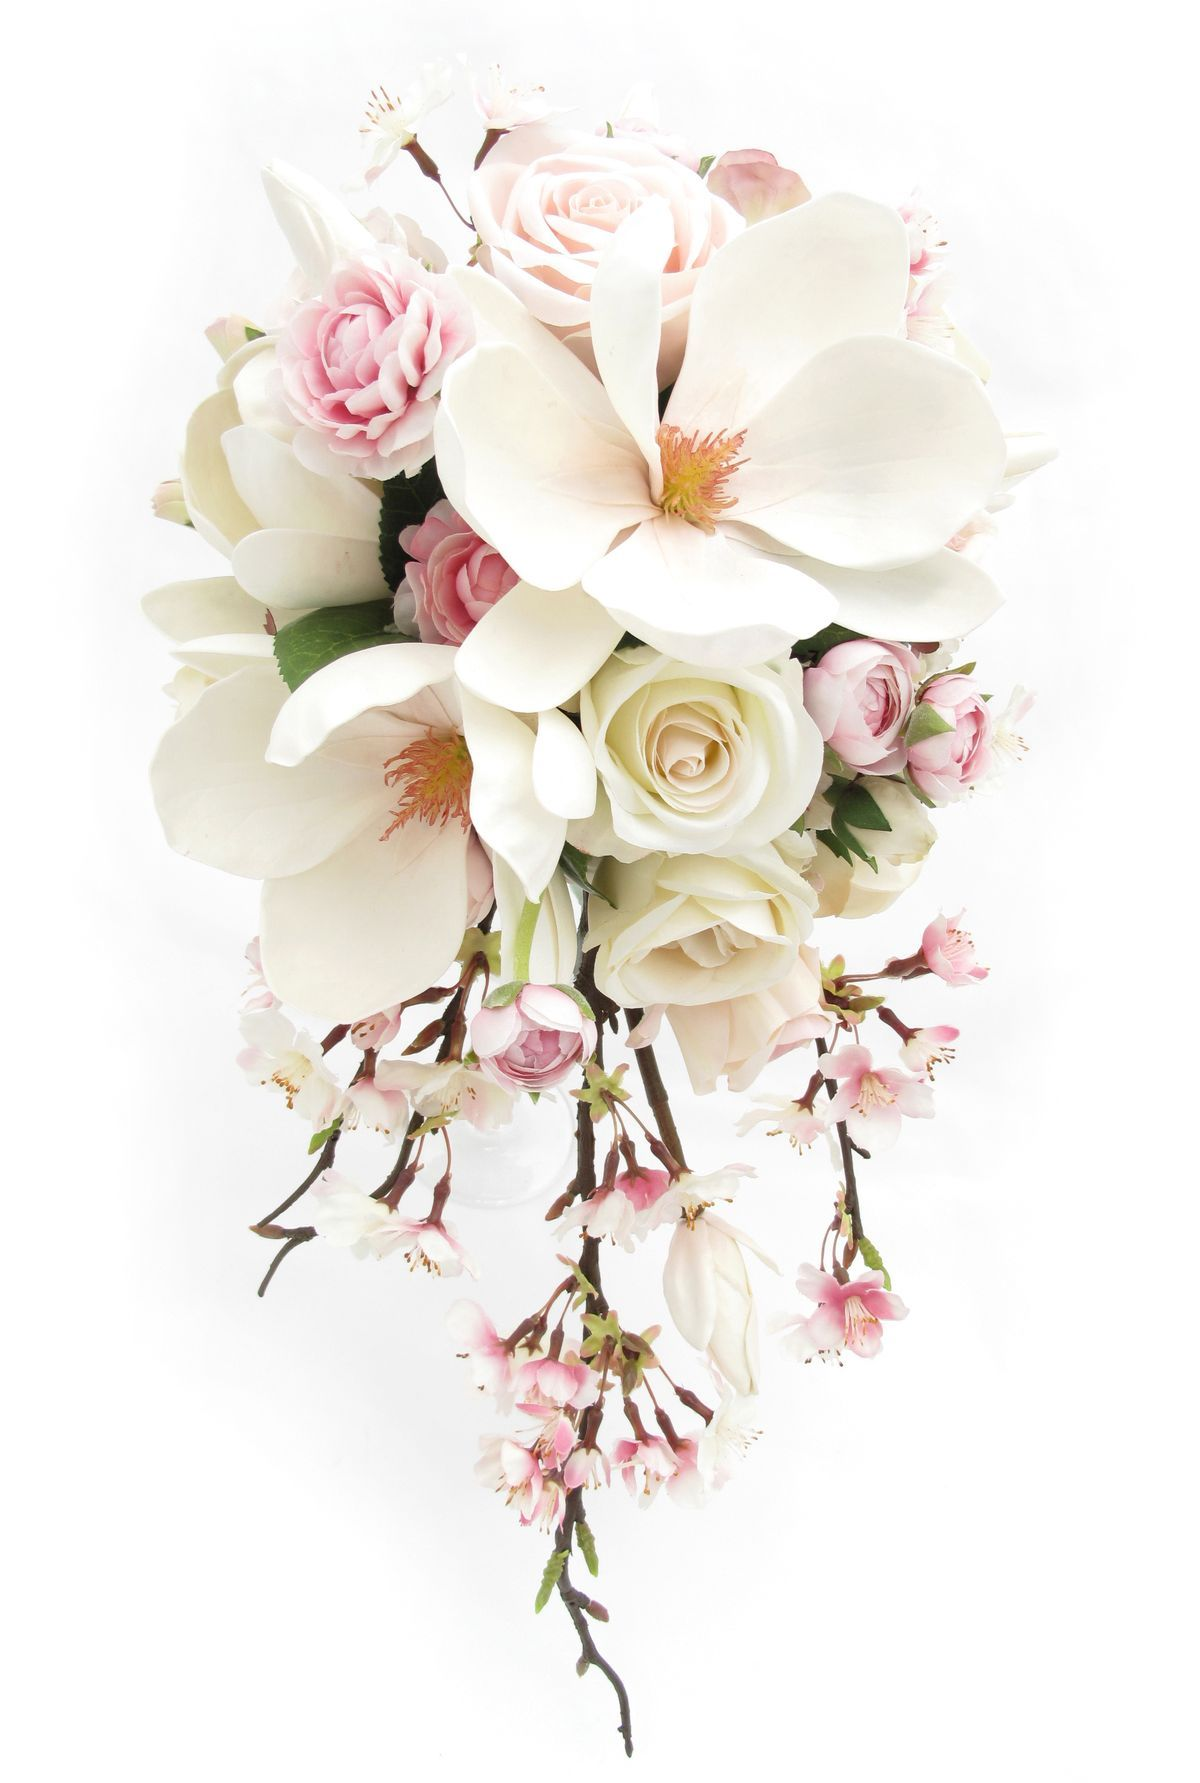 Pin by Maggi Chong on bouquet | Pinterest | Wedding, Flowers and ...